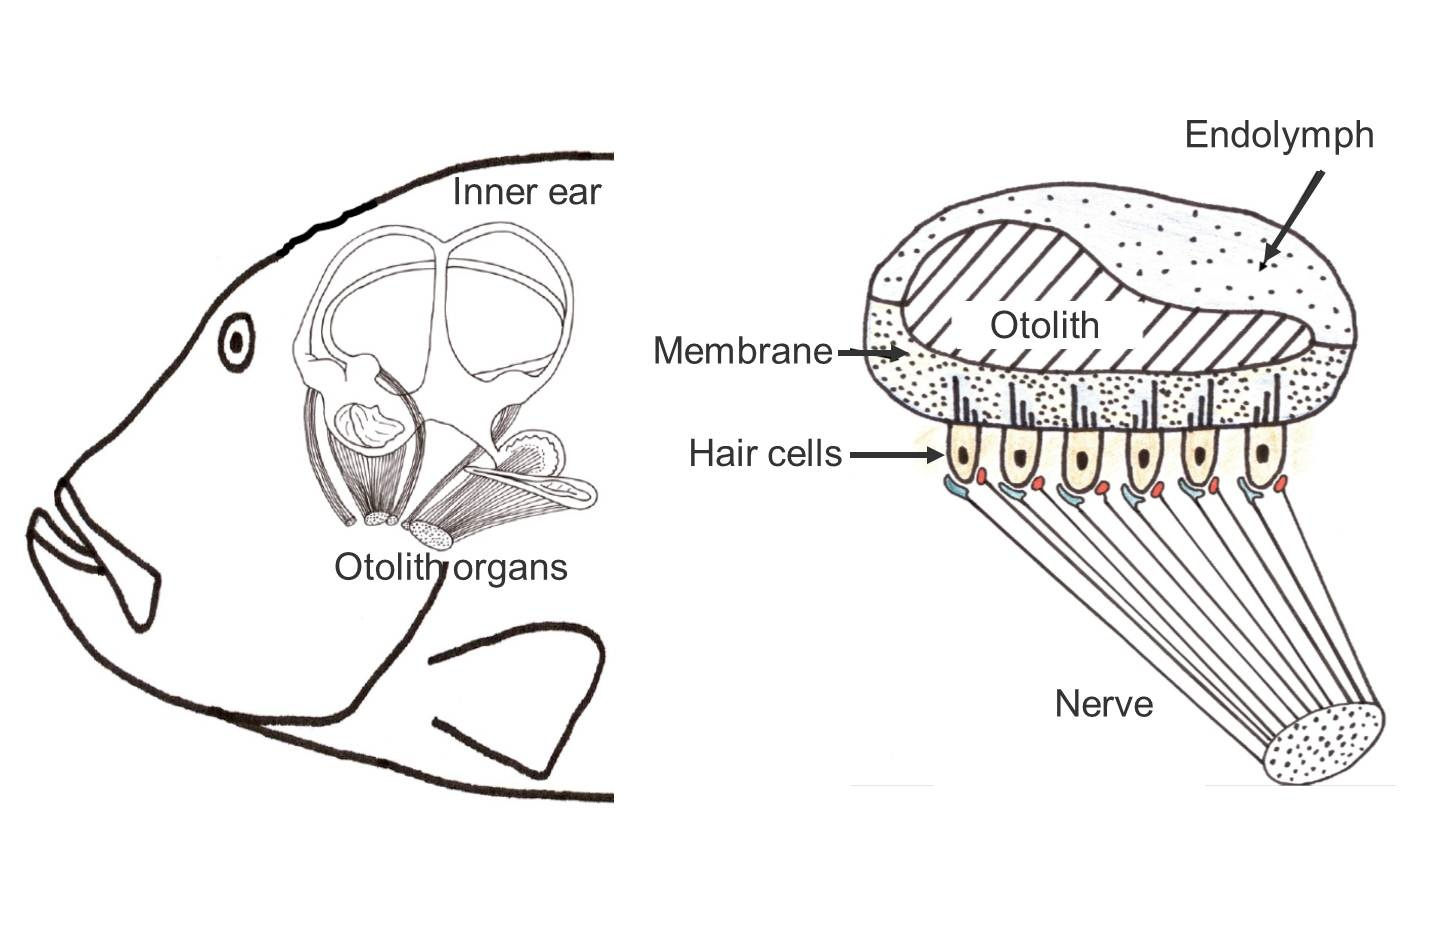 hight resolution of left the inner ear with three semicircular canals and three otolith organs right schematic cut through an otolith organ source lasse amundsen fish